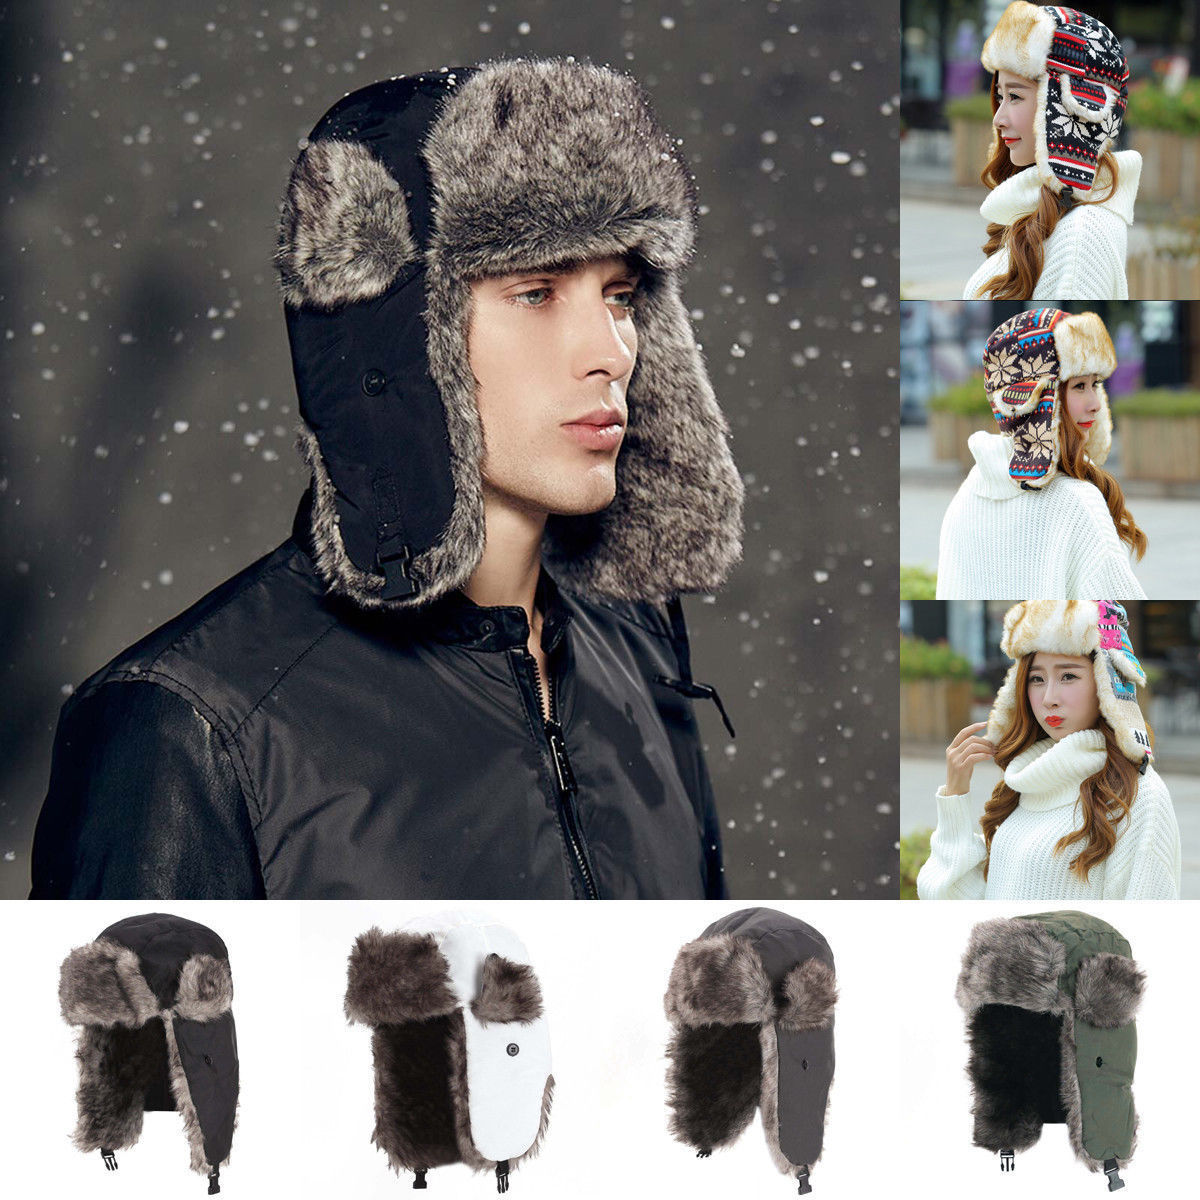 Apparel Accessories Honest Hot Men Women Winter Bomber Hats Trapper Earflap Warm Russian Ski Hat Bomber Hats Hot Sale 50-70% OFF